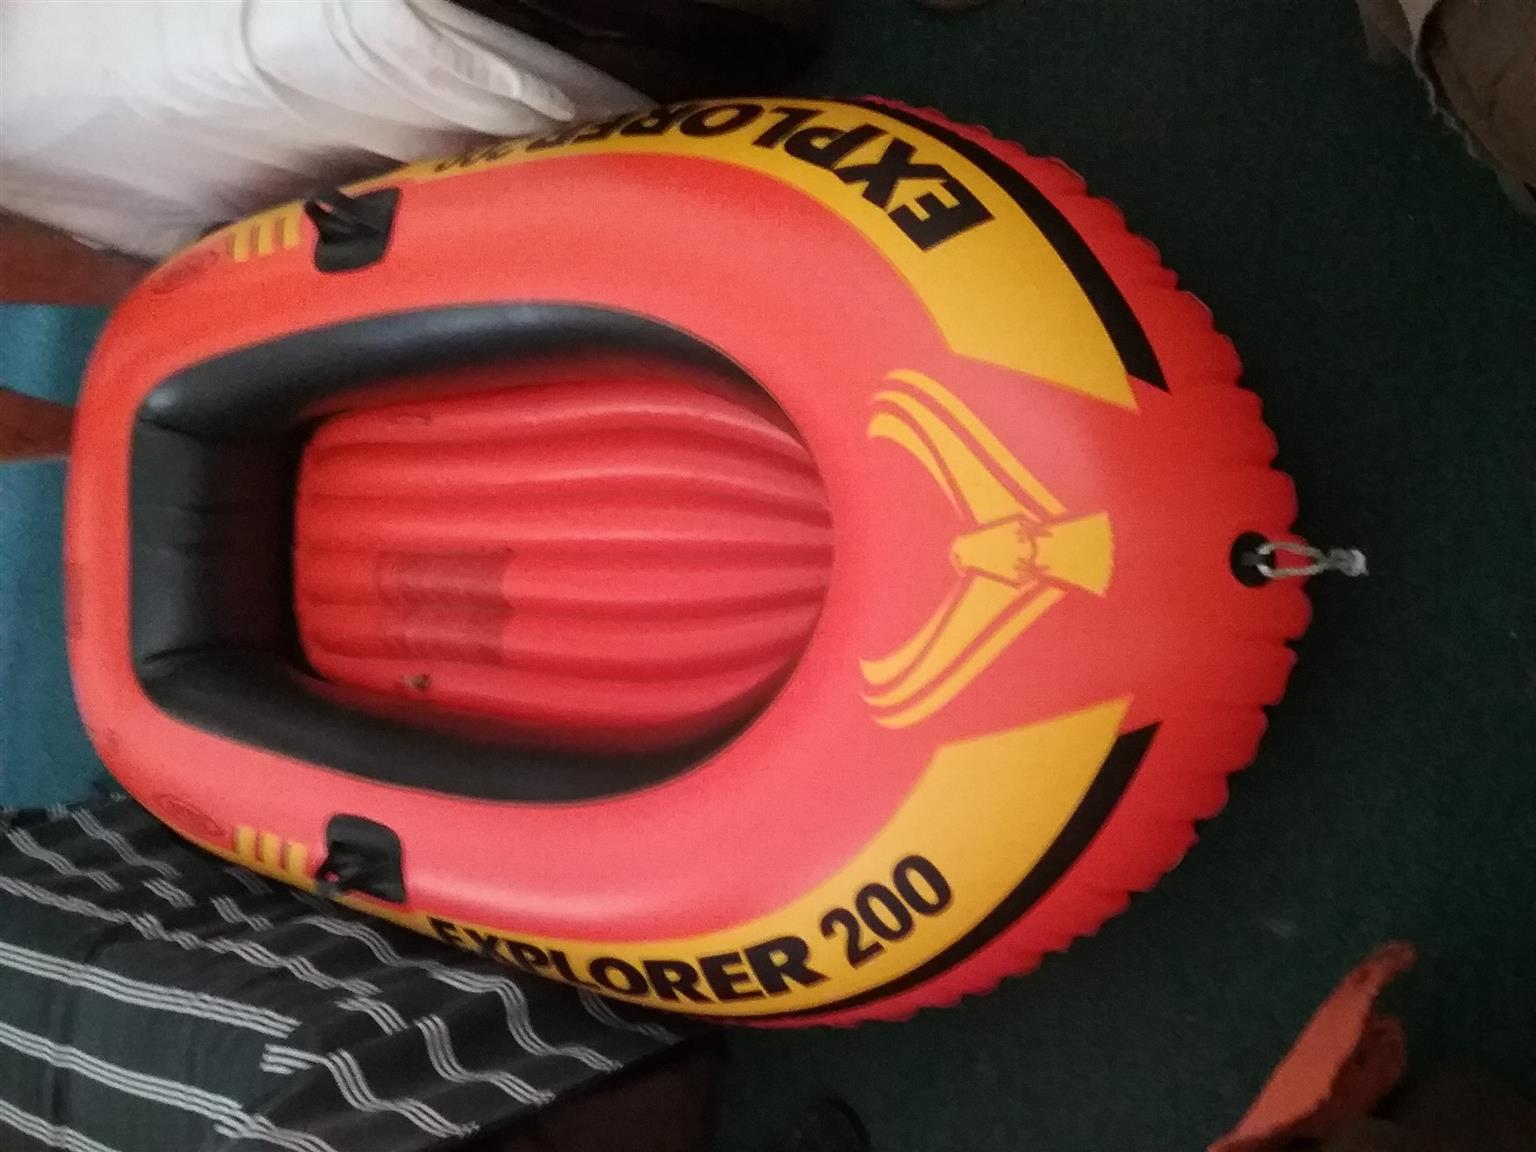 Explorer 200 with 2 X Oars